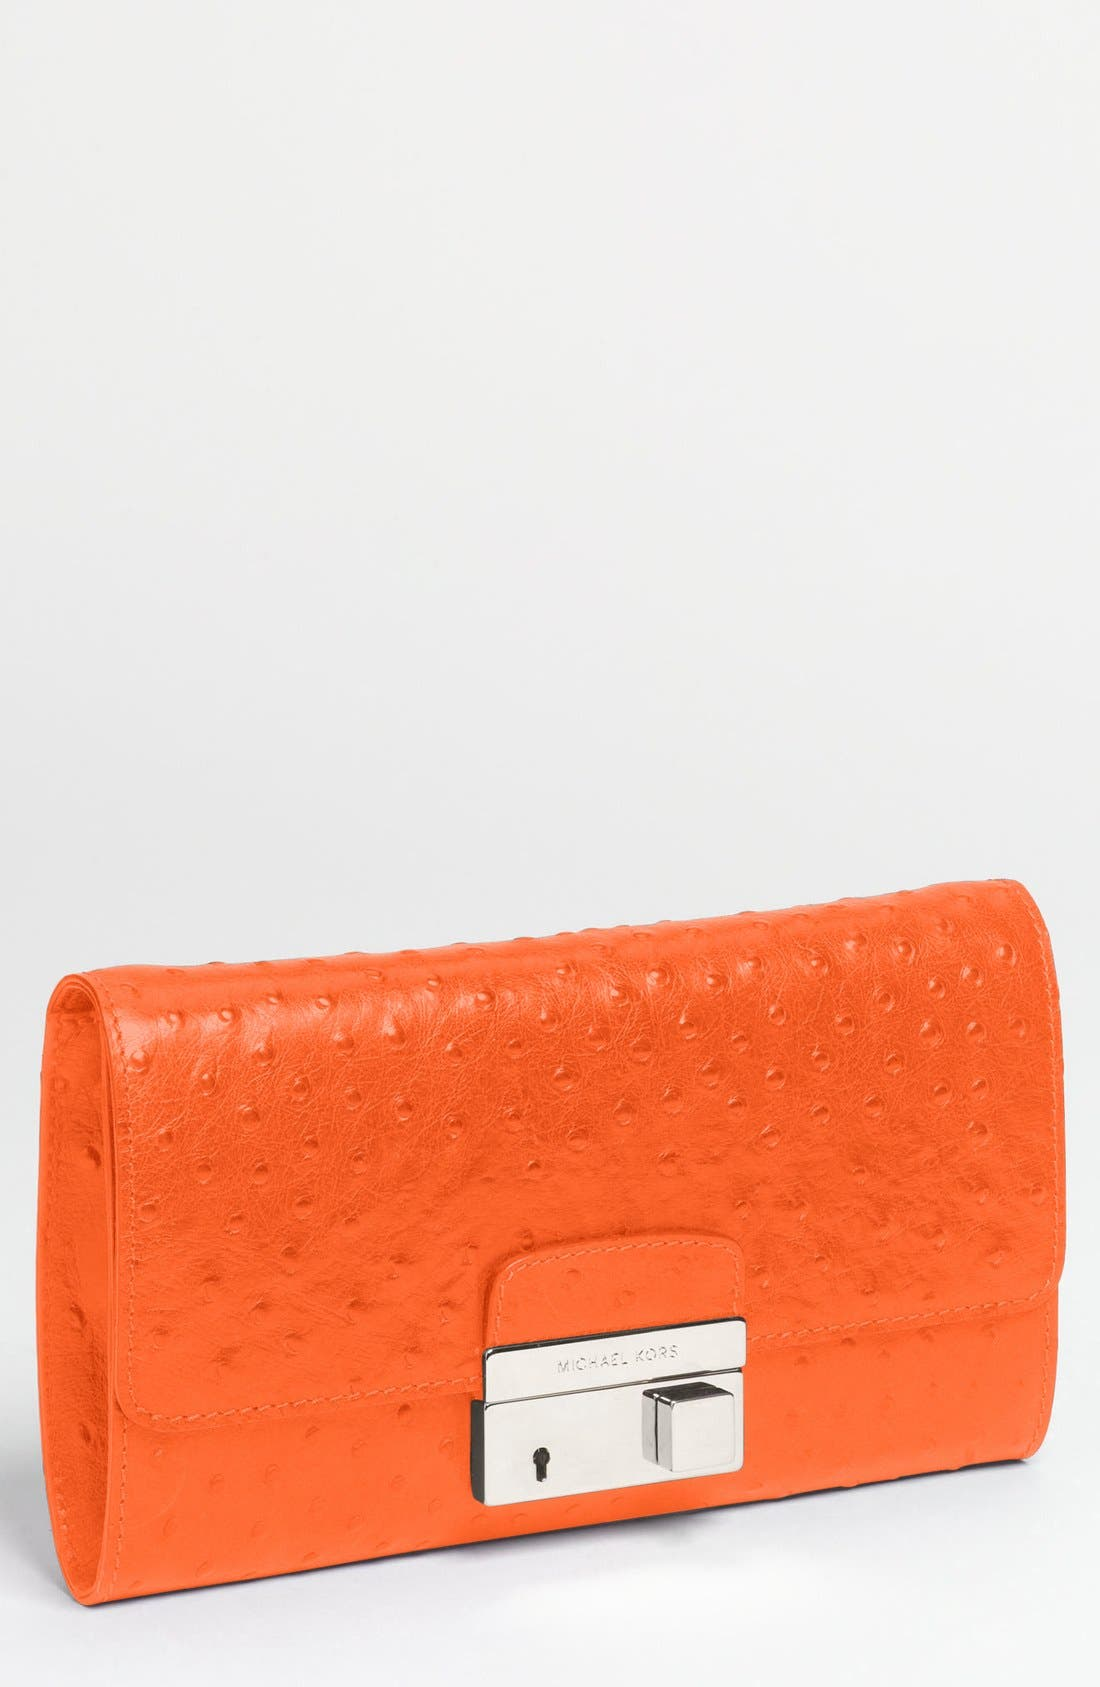 Main Image - Michael Kors 'Gia' Ostrich Embossed Leather Clutch (Online Only)